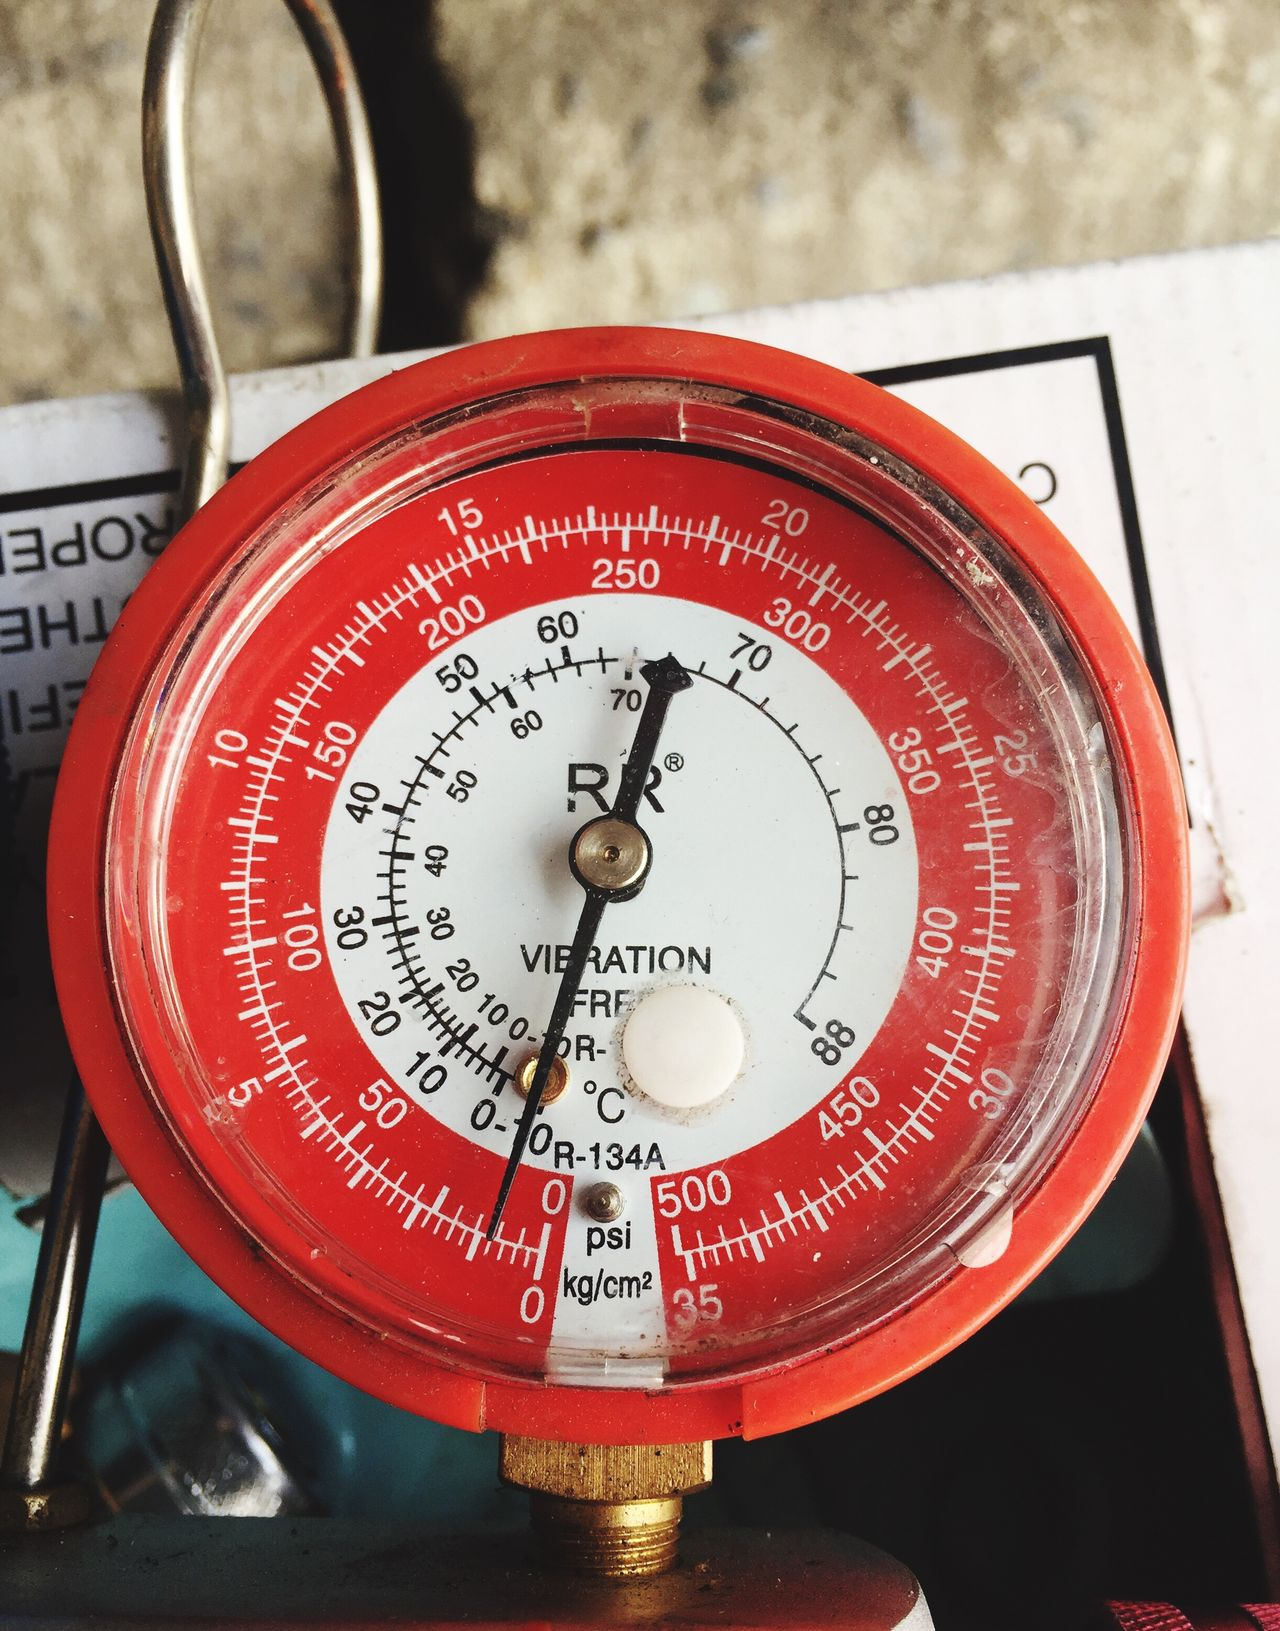 Red No People Outdoors Gauge Close-up Day Meter Meter - Instrument Of Measurement Measurement Metre Scales Scale  Scale Model Red Object Red Meter Numbers KPI Kpi Look Performance Vibrational Energy Vibration Sense